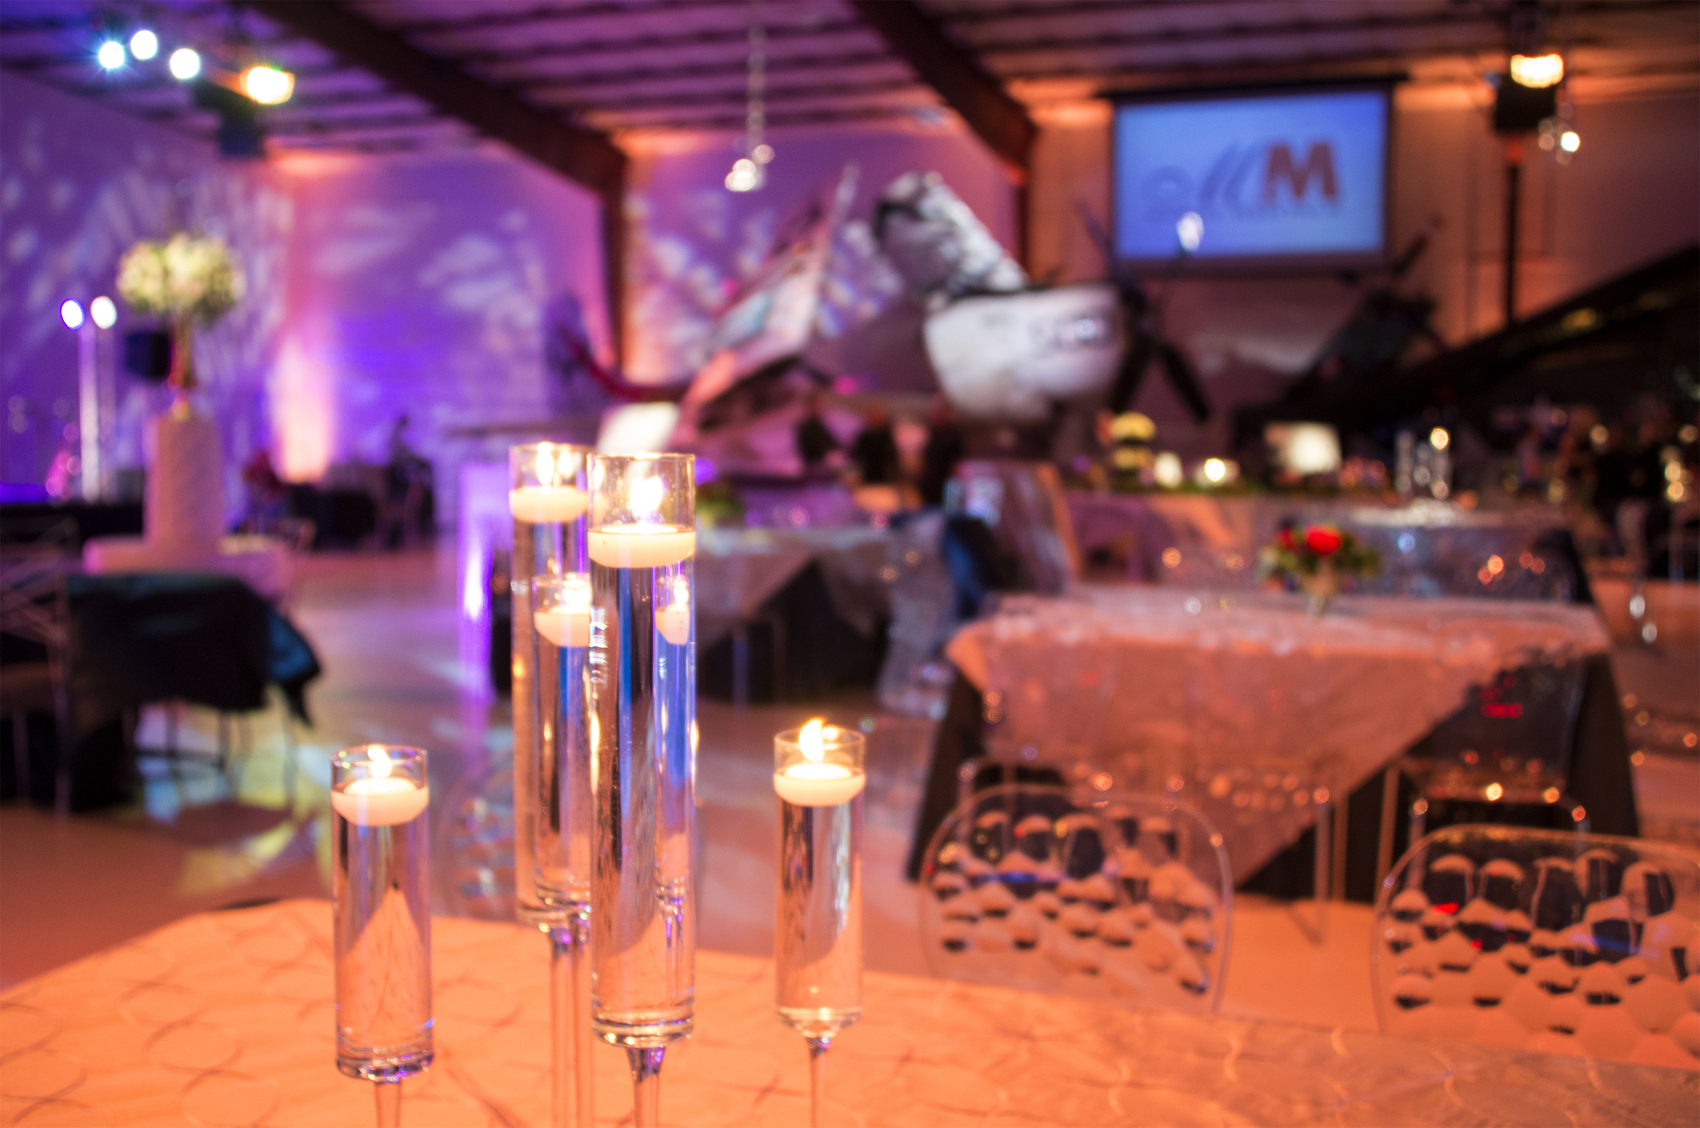 Texture- bubble chairs and lighting treatments transformed the space to industrial chic for this wonderful evening